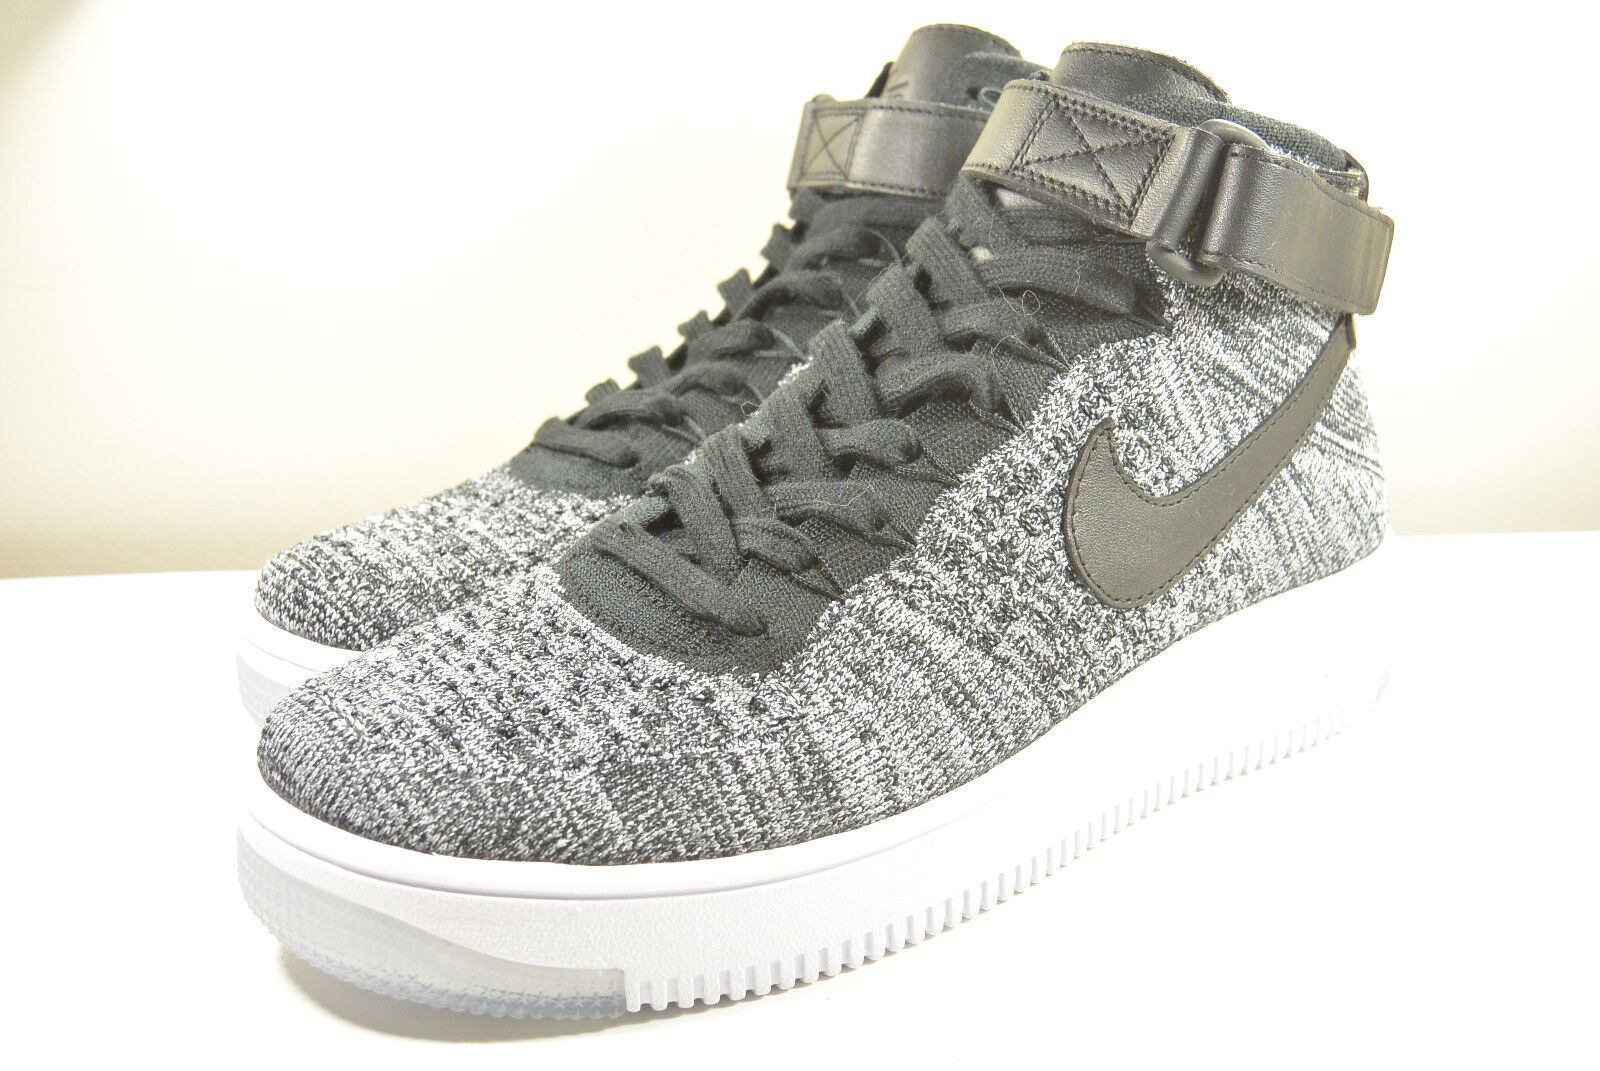 DS NIKE 2018 AIR FORCE 1 FLYKNIT OREO M 9.5 OR WMN 11 SUPREME CORK LEBRON SF-AF1